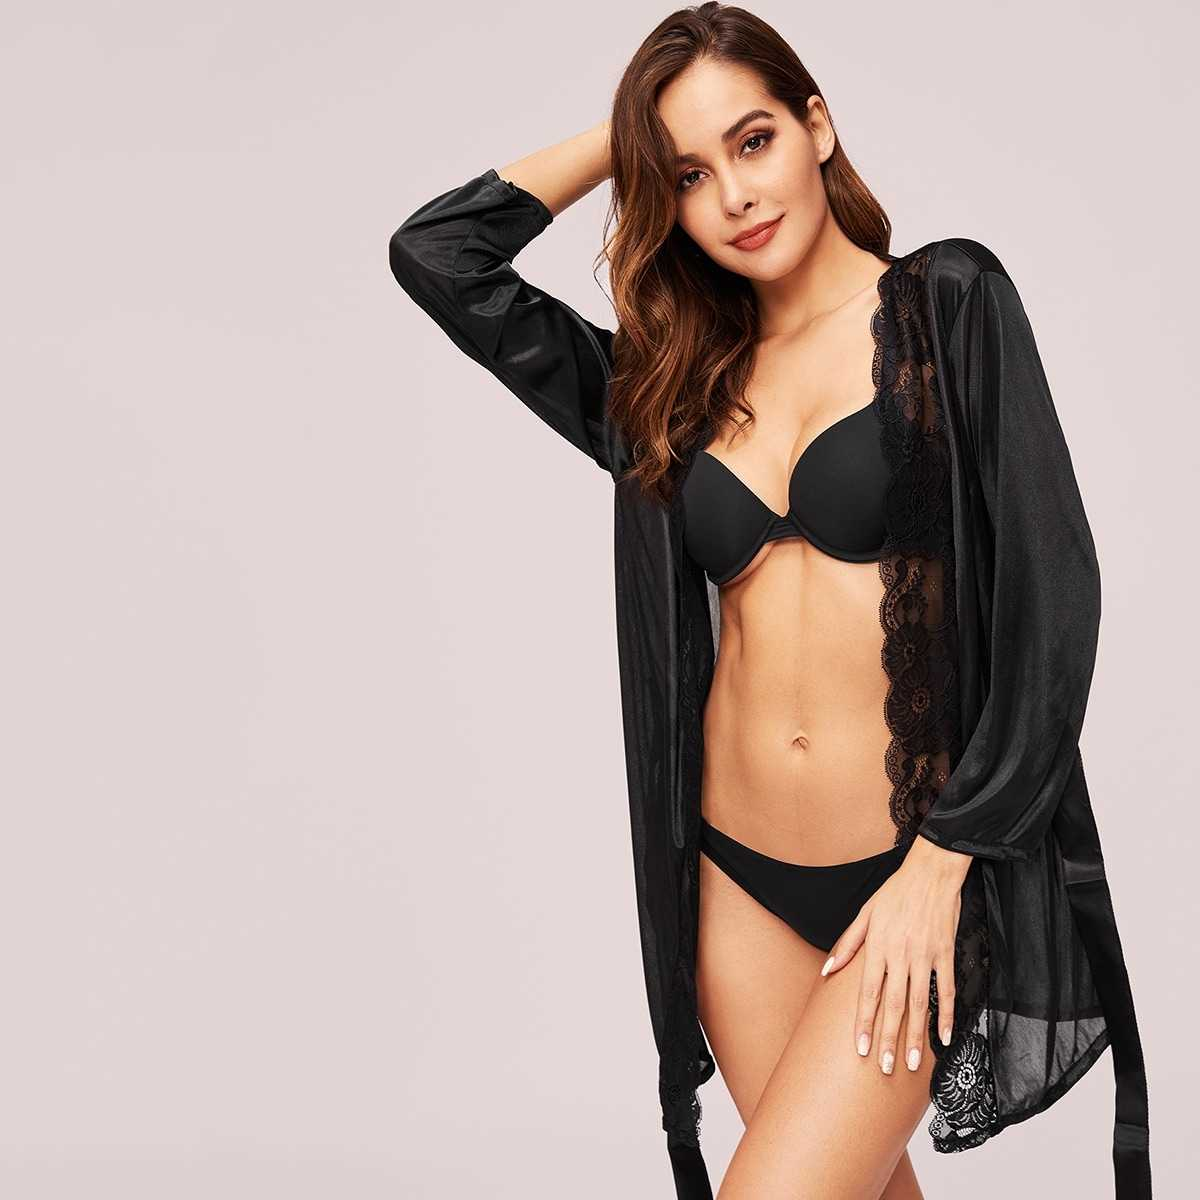 Scalloped Trim Contrast Lace Robe With Belt in Black by ROMWE on GOOFASH